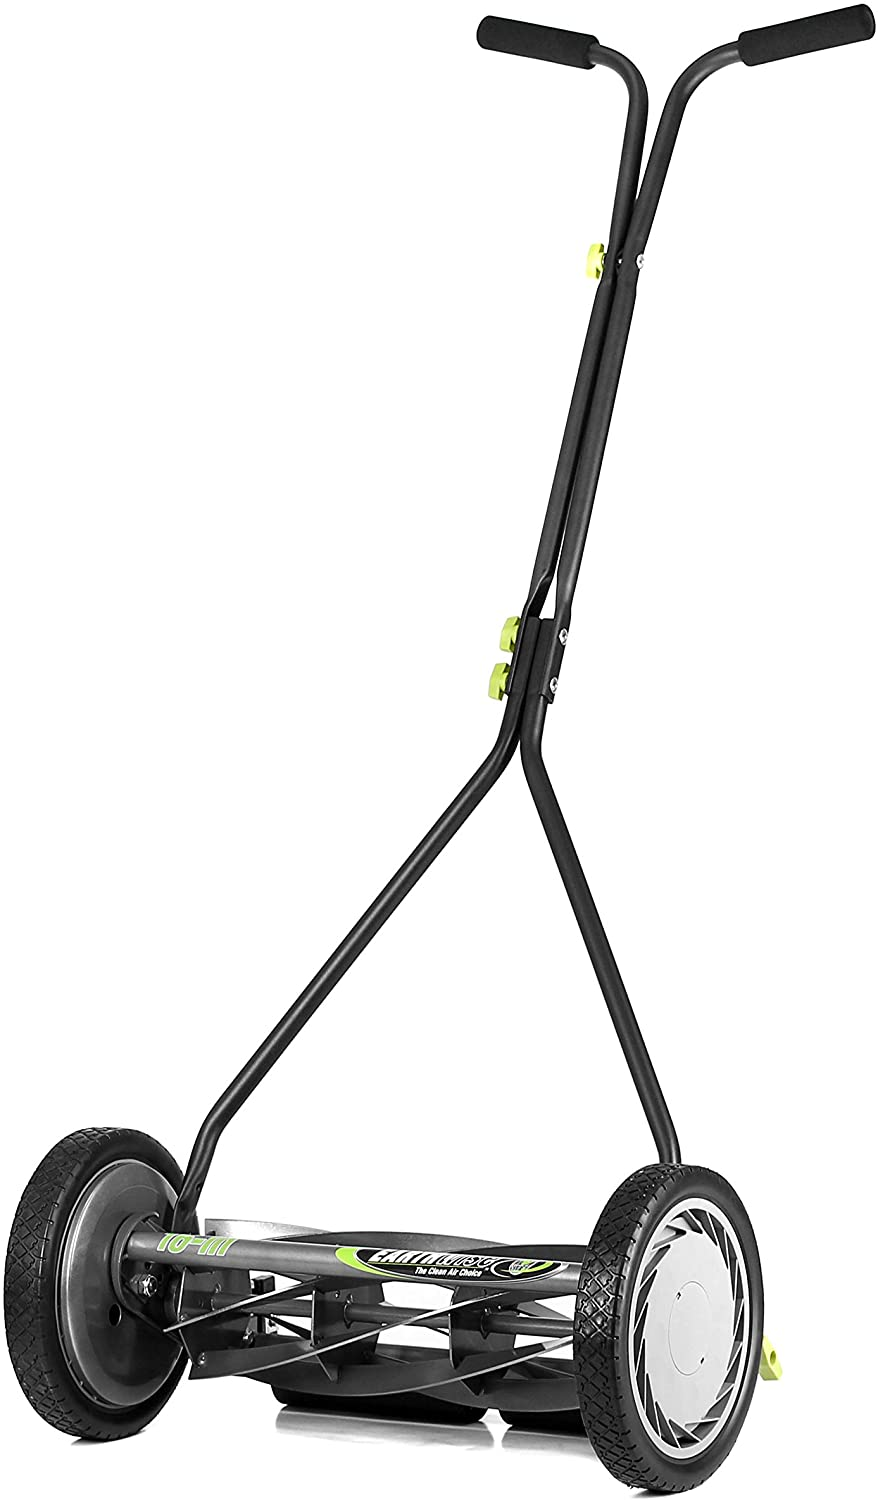 9. Earthwise 1715-16EW 16-Inch 7-Blade Push Reel Lawn Mower, Gray/Silver/Green